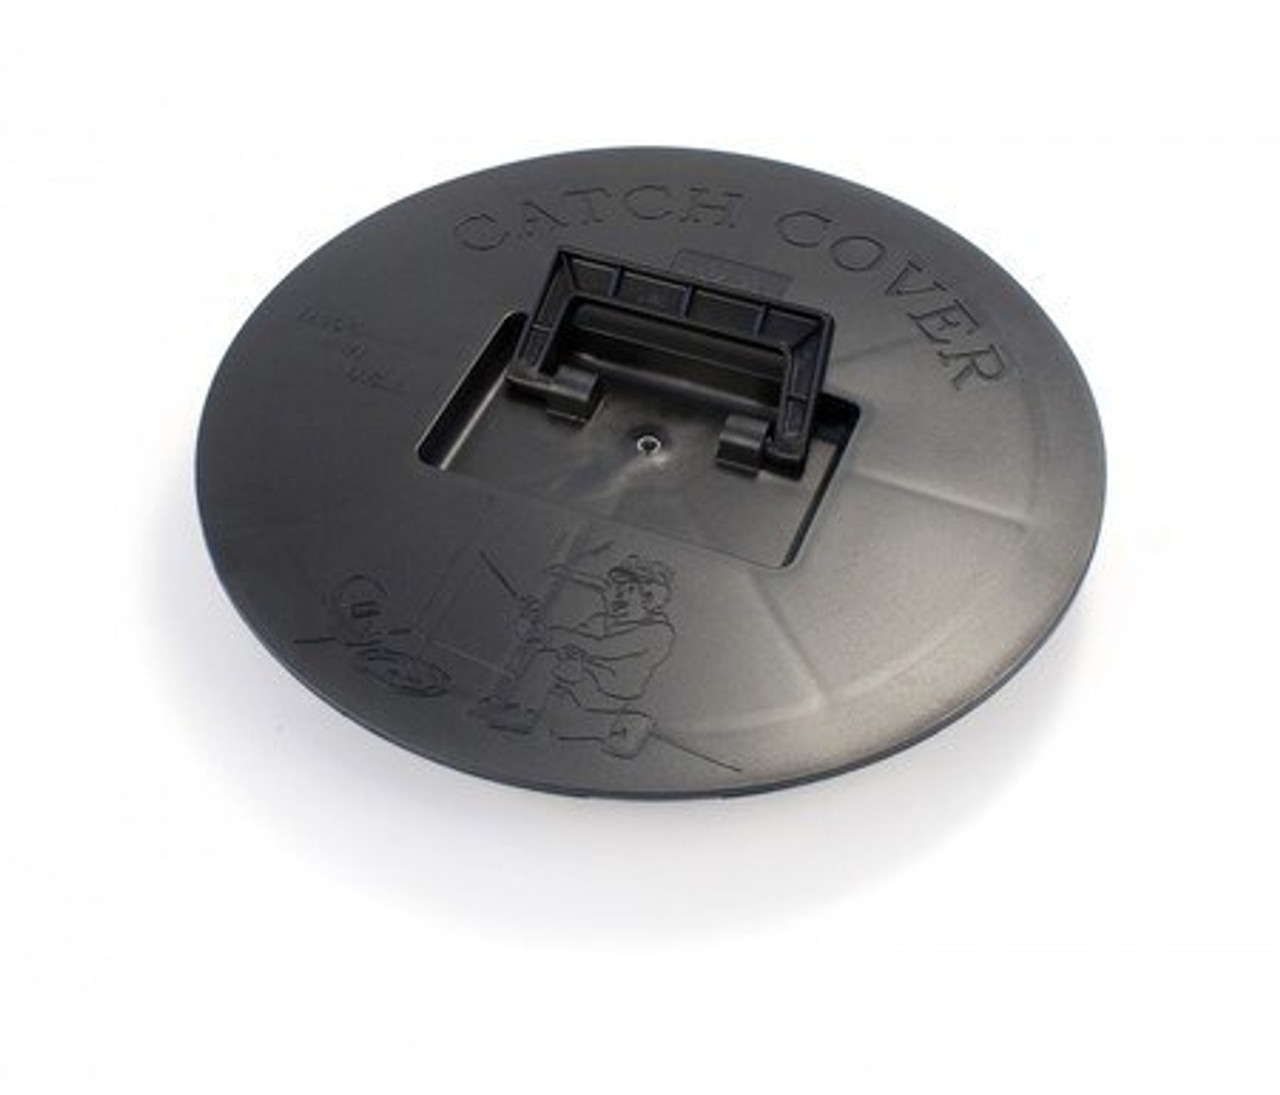 STORES UP TO 7 HOLE COVER LIDS WHILE FISHING!